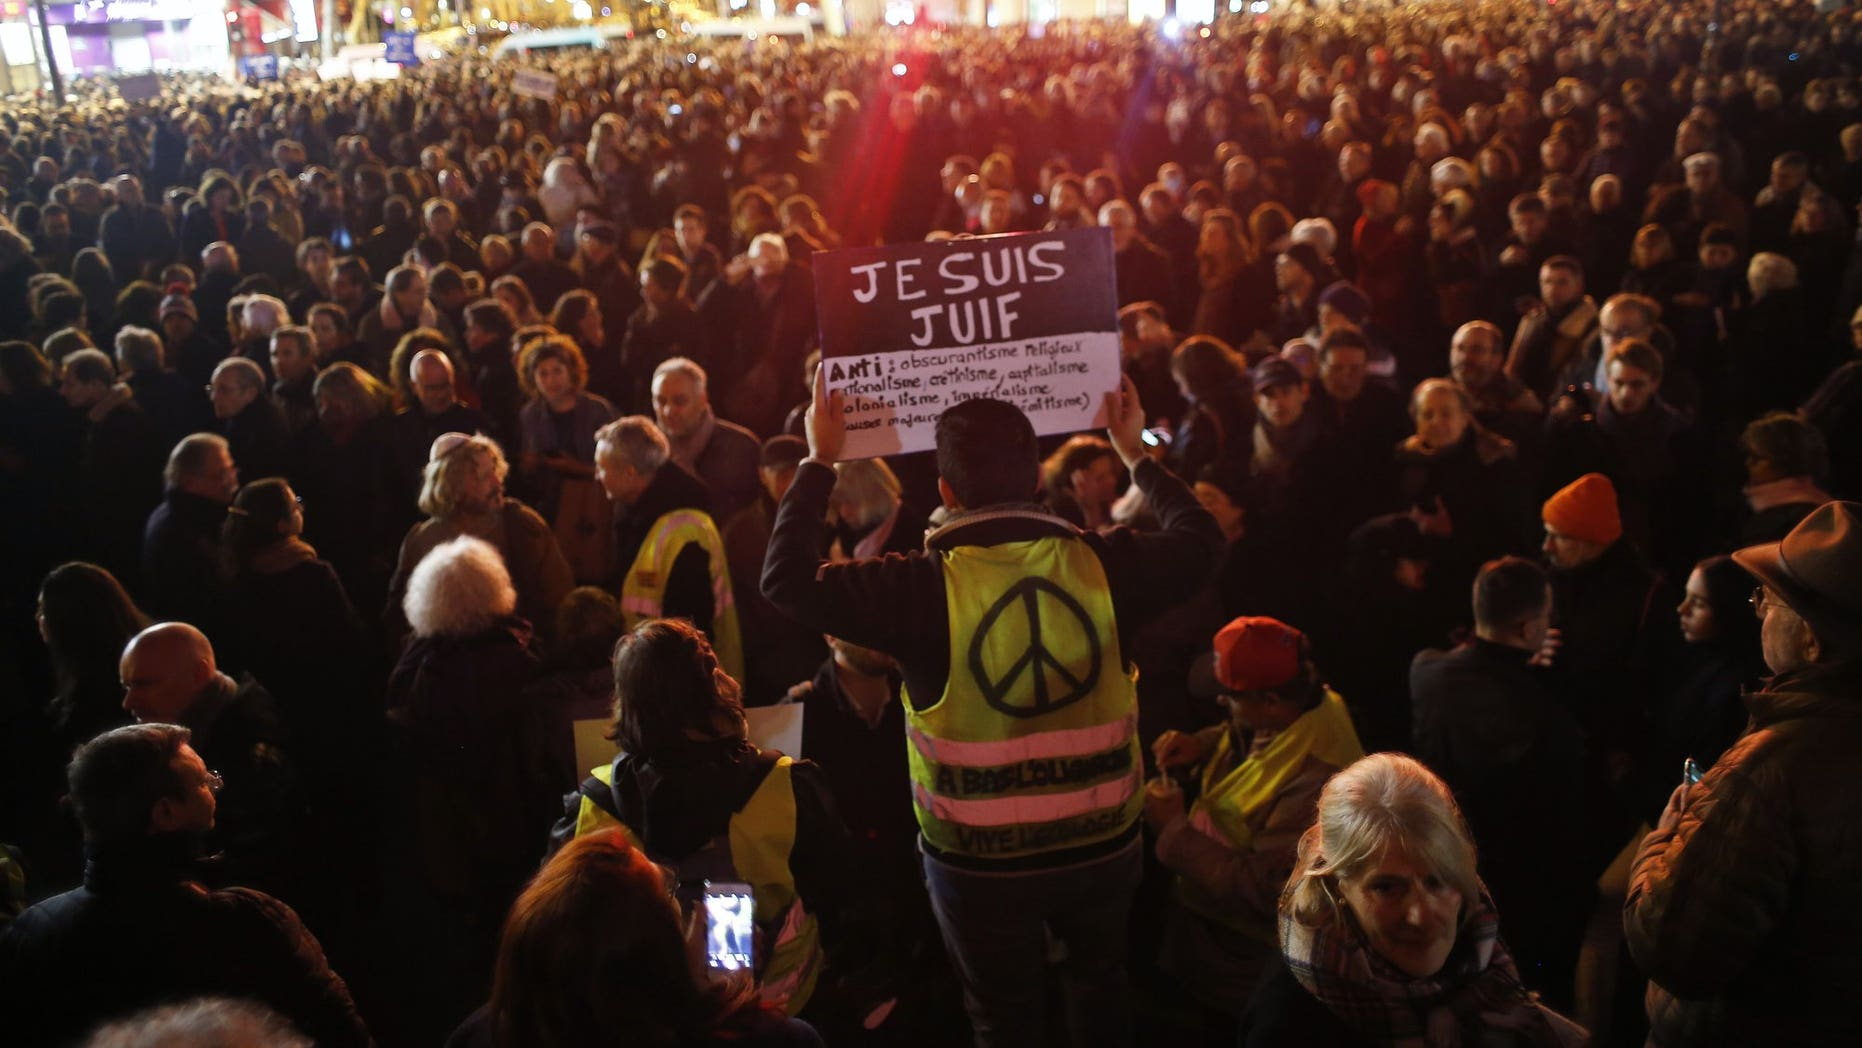 """A man wearing a yellow vest holds a placard reading """"I am jew"""", during a gathering at the Republique square to protest against anti-Semitism, in Paris, France, Tuesday, Feb. 19, 2019. In Paris and dozens of other French cities, ordinary citizens and officials across the political spectrum geared up Tuesday to march and rally against anti-Semitism, following a series of anti-Semitic acts that shocked the nation."""